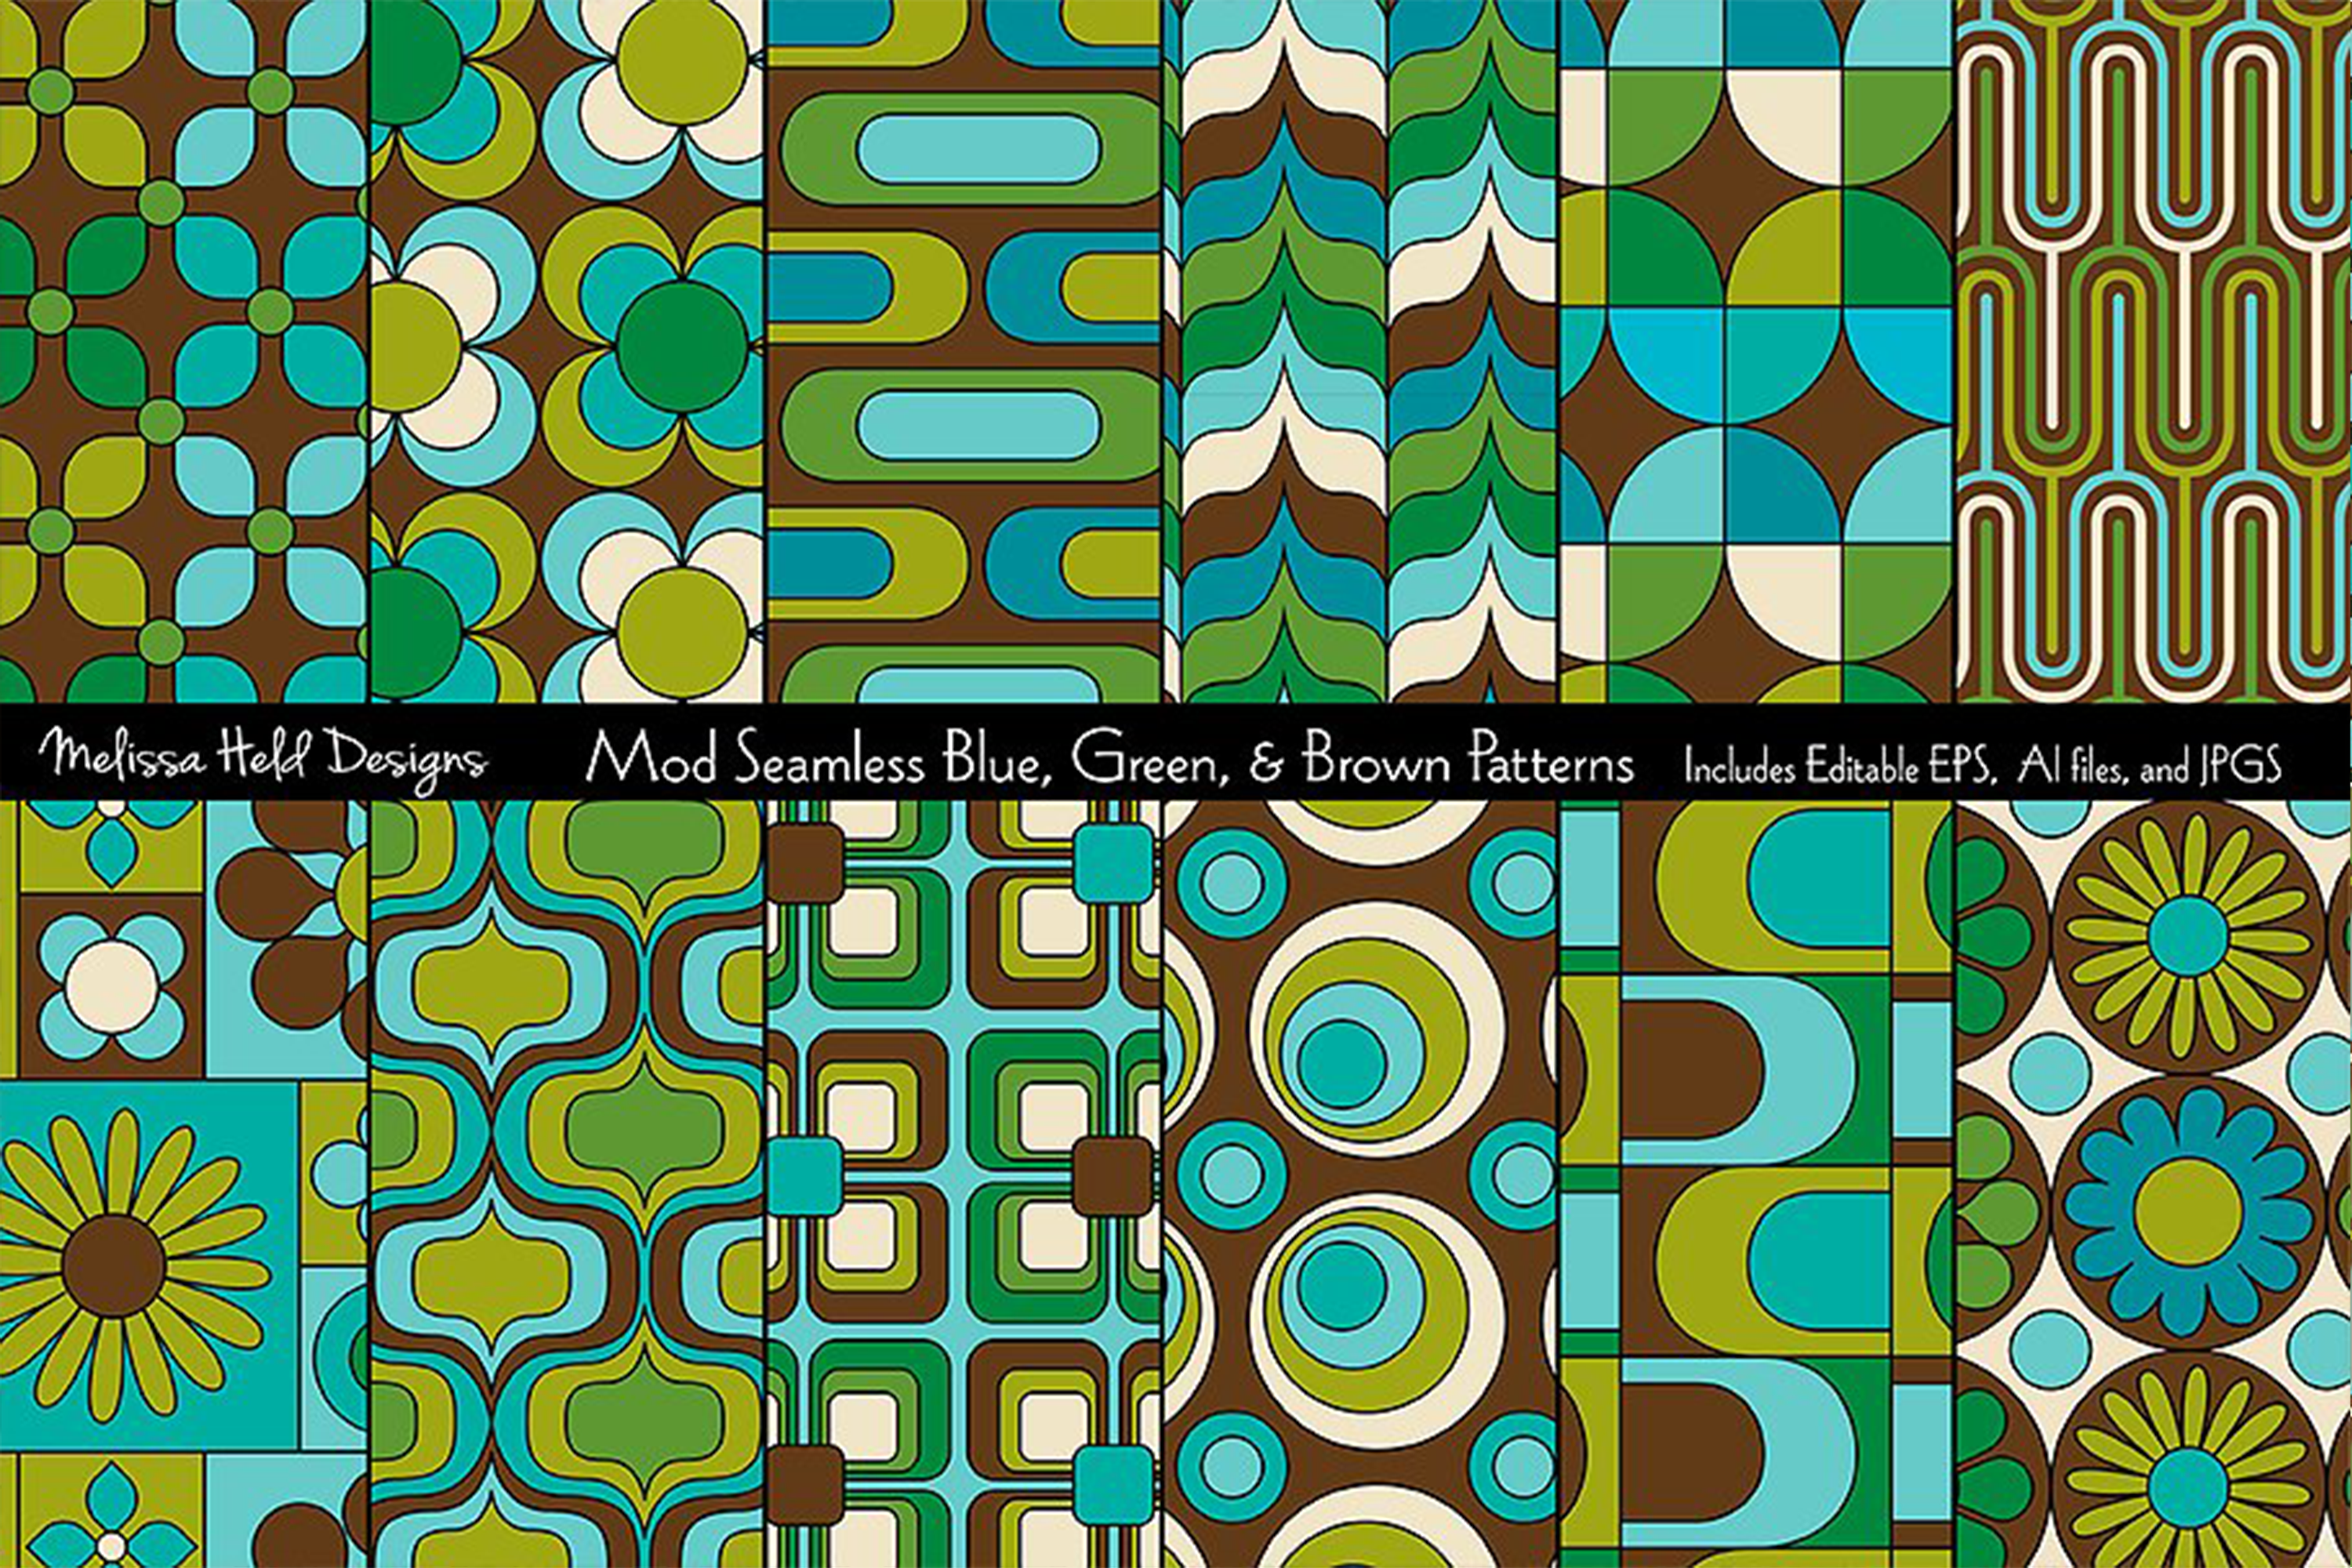 Mod Blue & Green Seamless Patterns example image 1